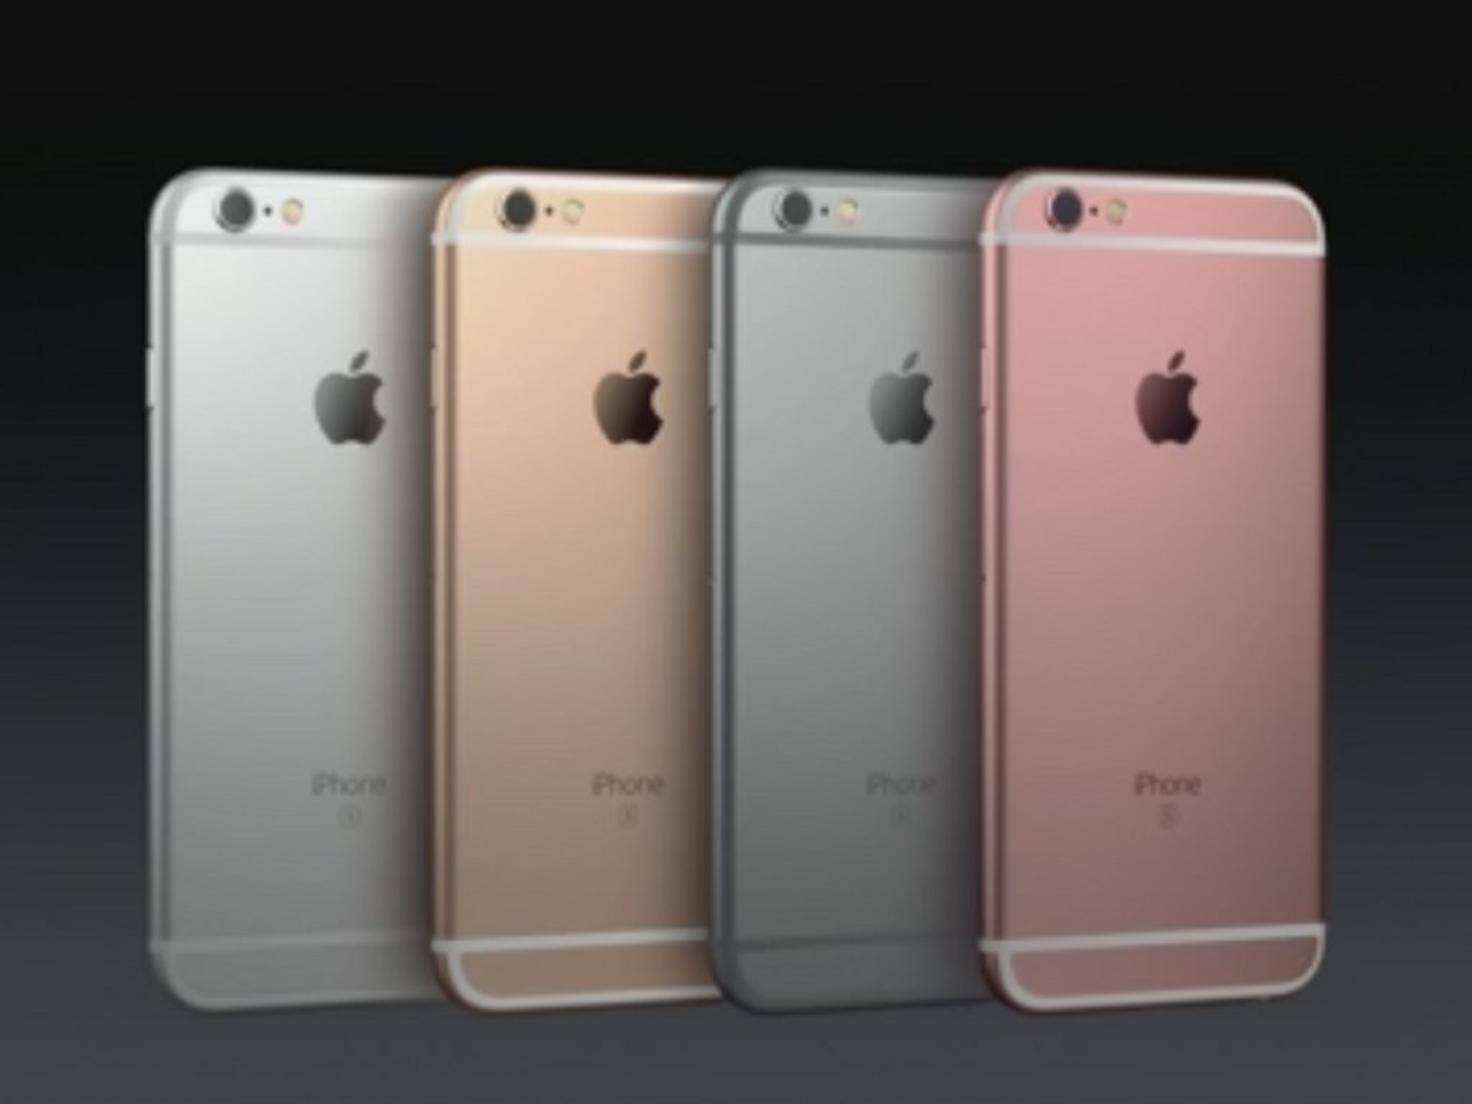 iPhone6s-Farben